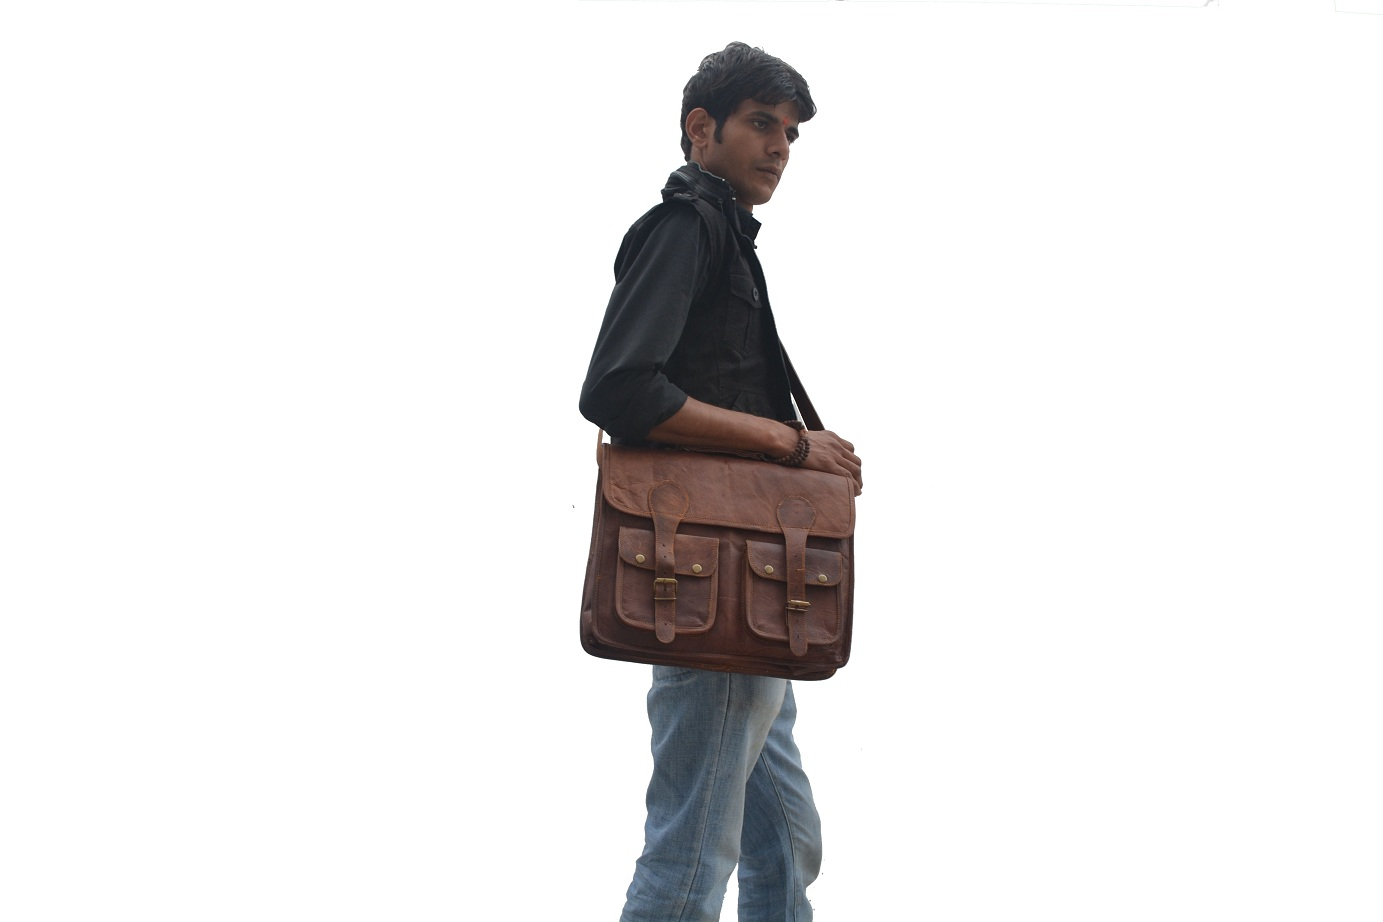 6da87a849905 DSCN3863 DSC 0214 DSC 0414 DSC 0416 DSC 0423 DSC 0424 DSC 0425 Handmadecart Leather  Messenger Bags for Men and Women Laptop 15 Inch Briefcase